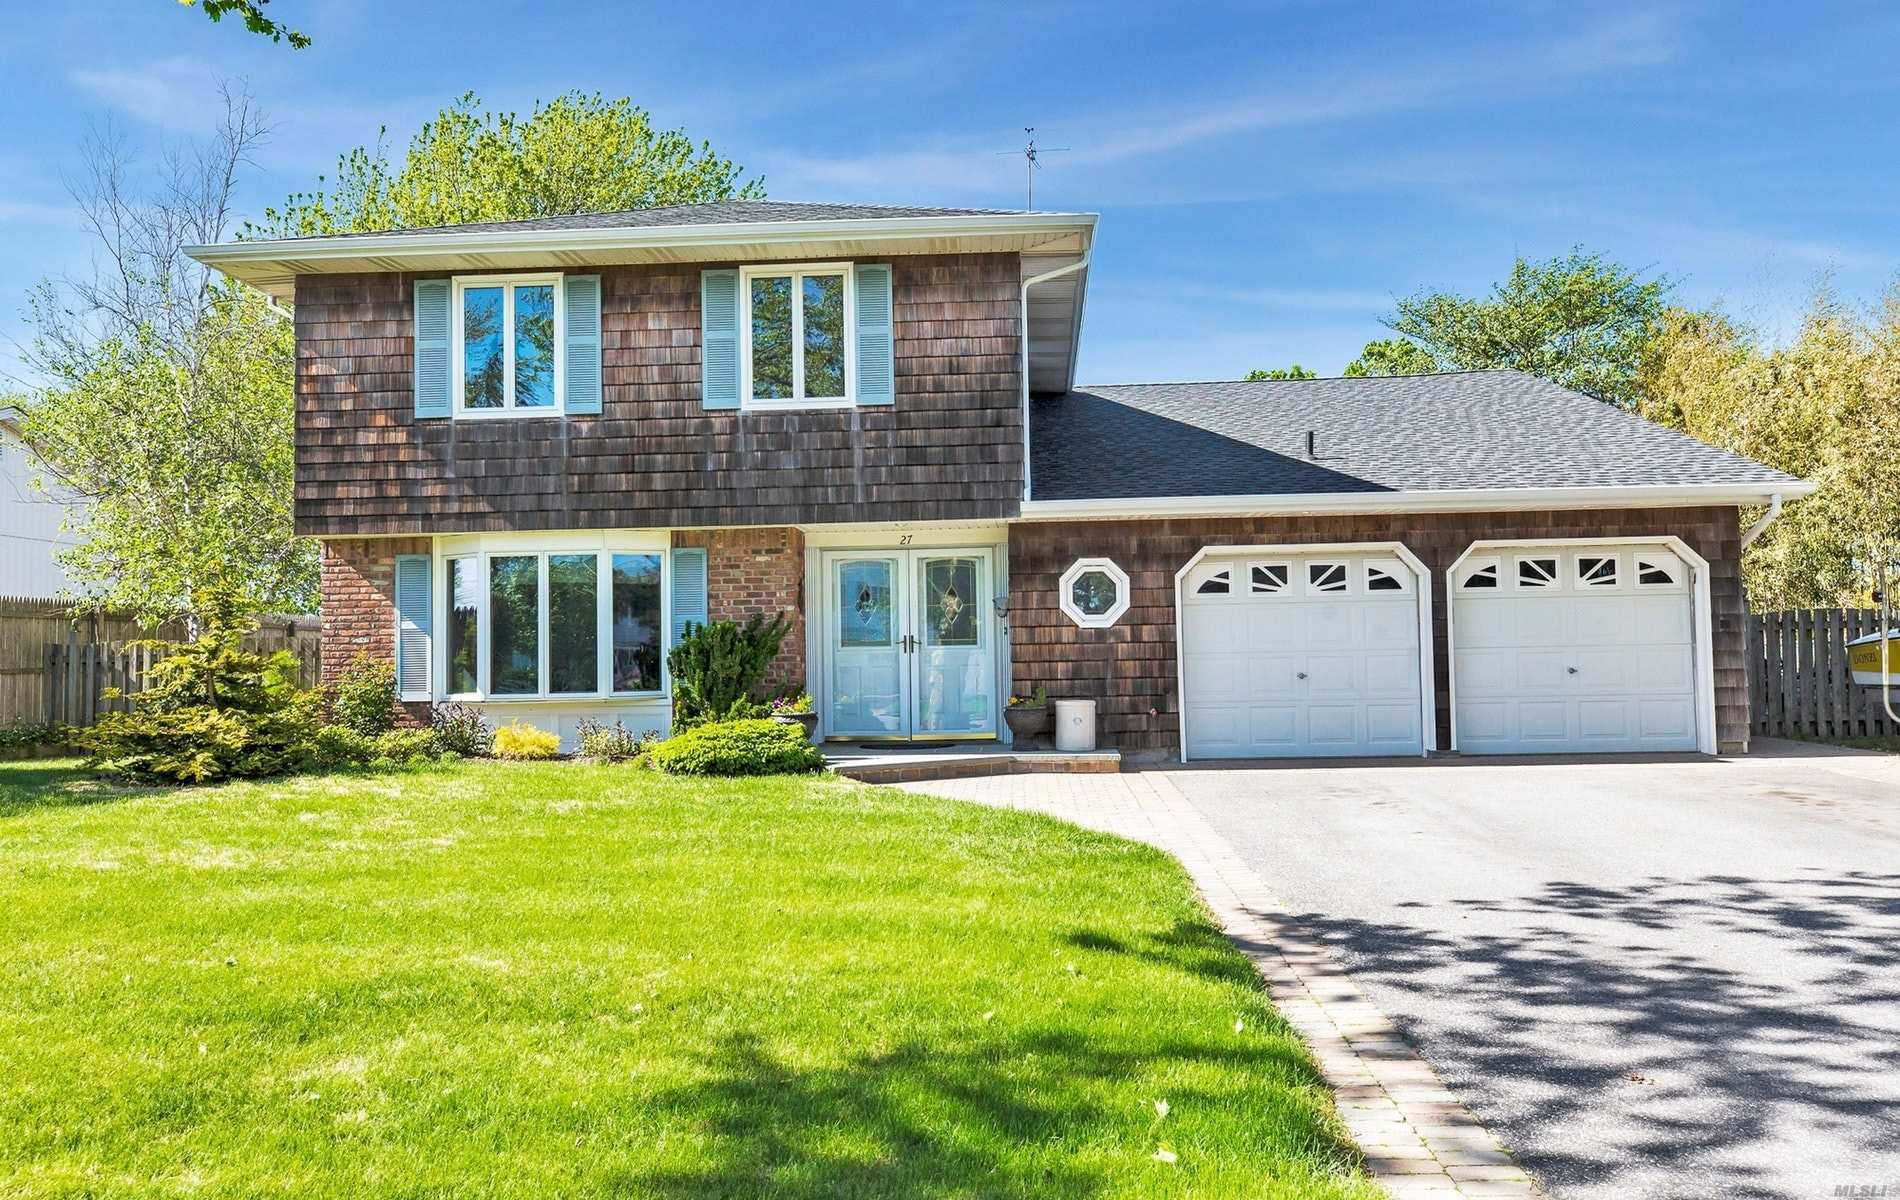 Renovated Waterfront Colonial Splanch w/2, 214 SF + 2-Car Att 460 SF Garage.EH w/Coat Closet, Half Bath & Entry Into Garage, Formal Dining Room, & Open Eat-in-Kitchen & Den w/Fireplace. 2nd Floor has the Living Room w/French Doors to Deck. Top Floor has Master Bedroom w/MBth, 3 More Bedrooms & Full Bath. Part Bsmt w/Laundry/Boiler Area. Radiant Heat Throughout 1st Fl. Gas Heat, Radiant Floors, 80' Bulkhead. No Flood Insurance Needed.